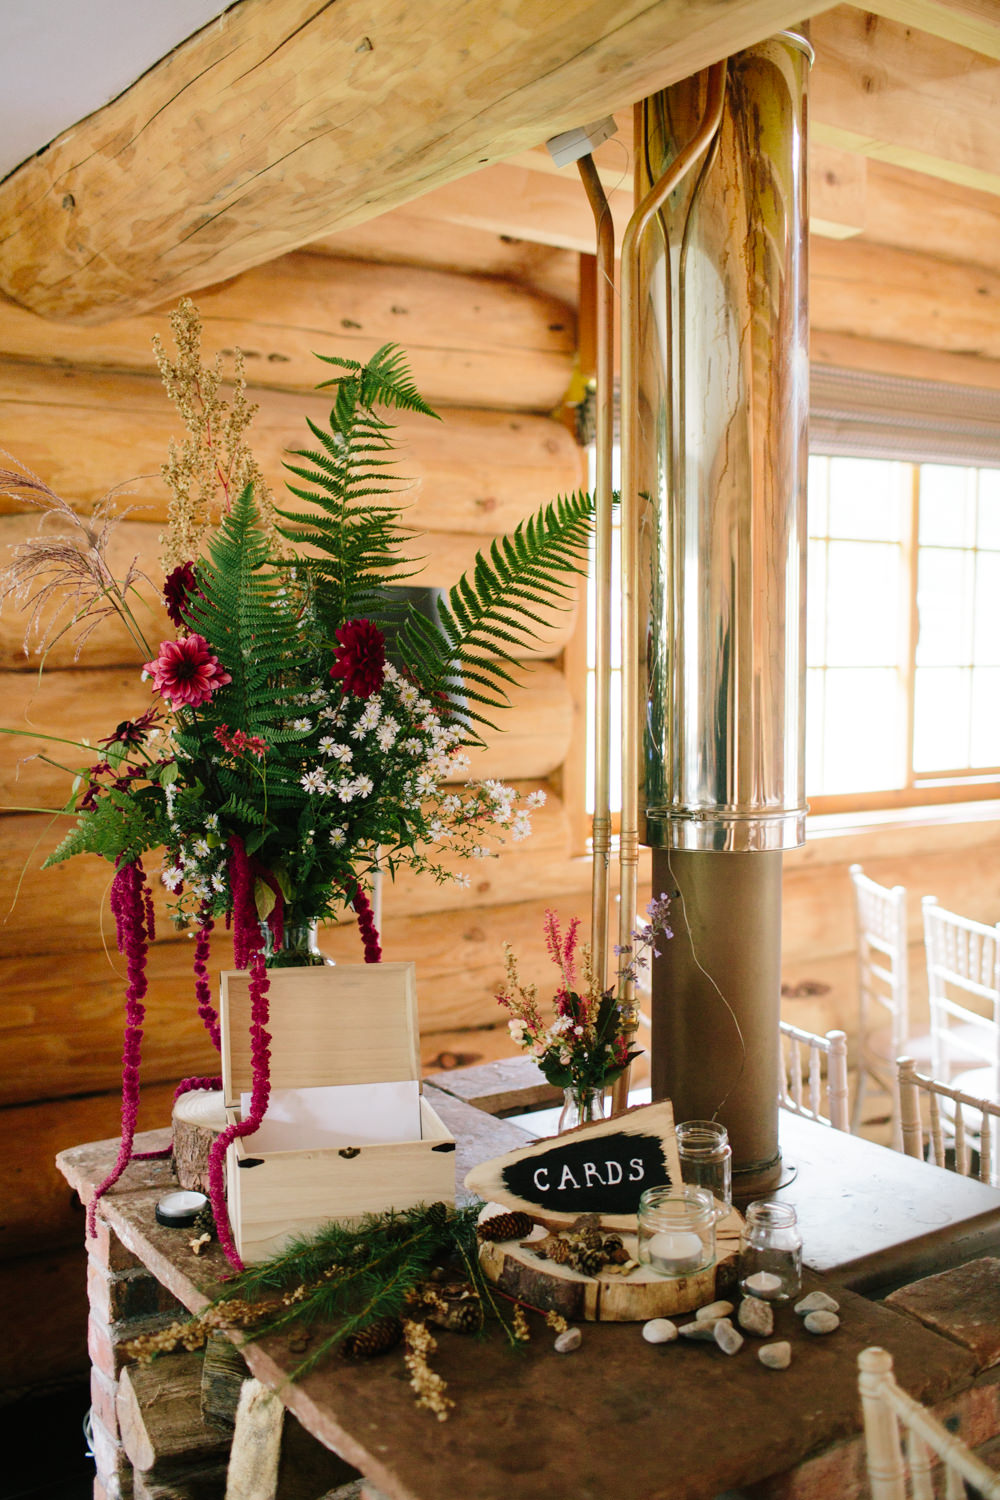 Card Table Rustic Flowers Sign Wooden Box Hidden River Cabins Wedding Dan Hough Photo